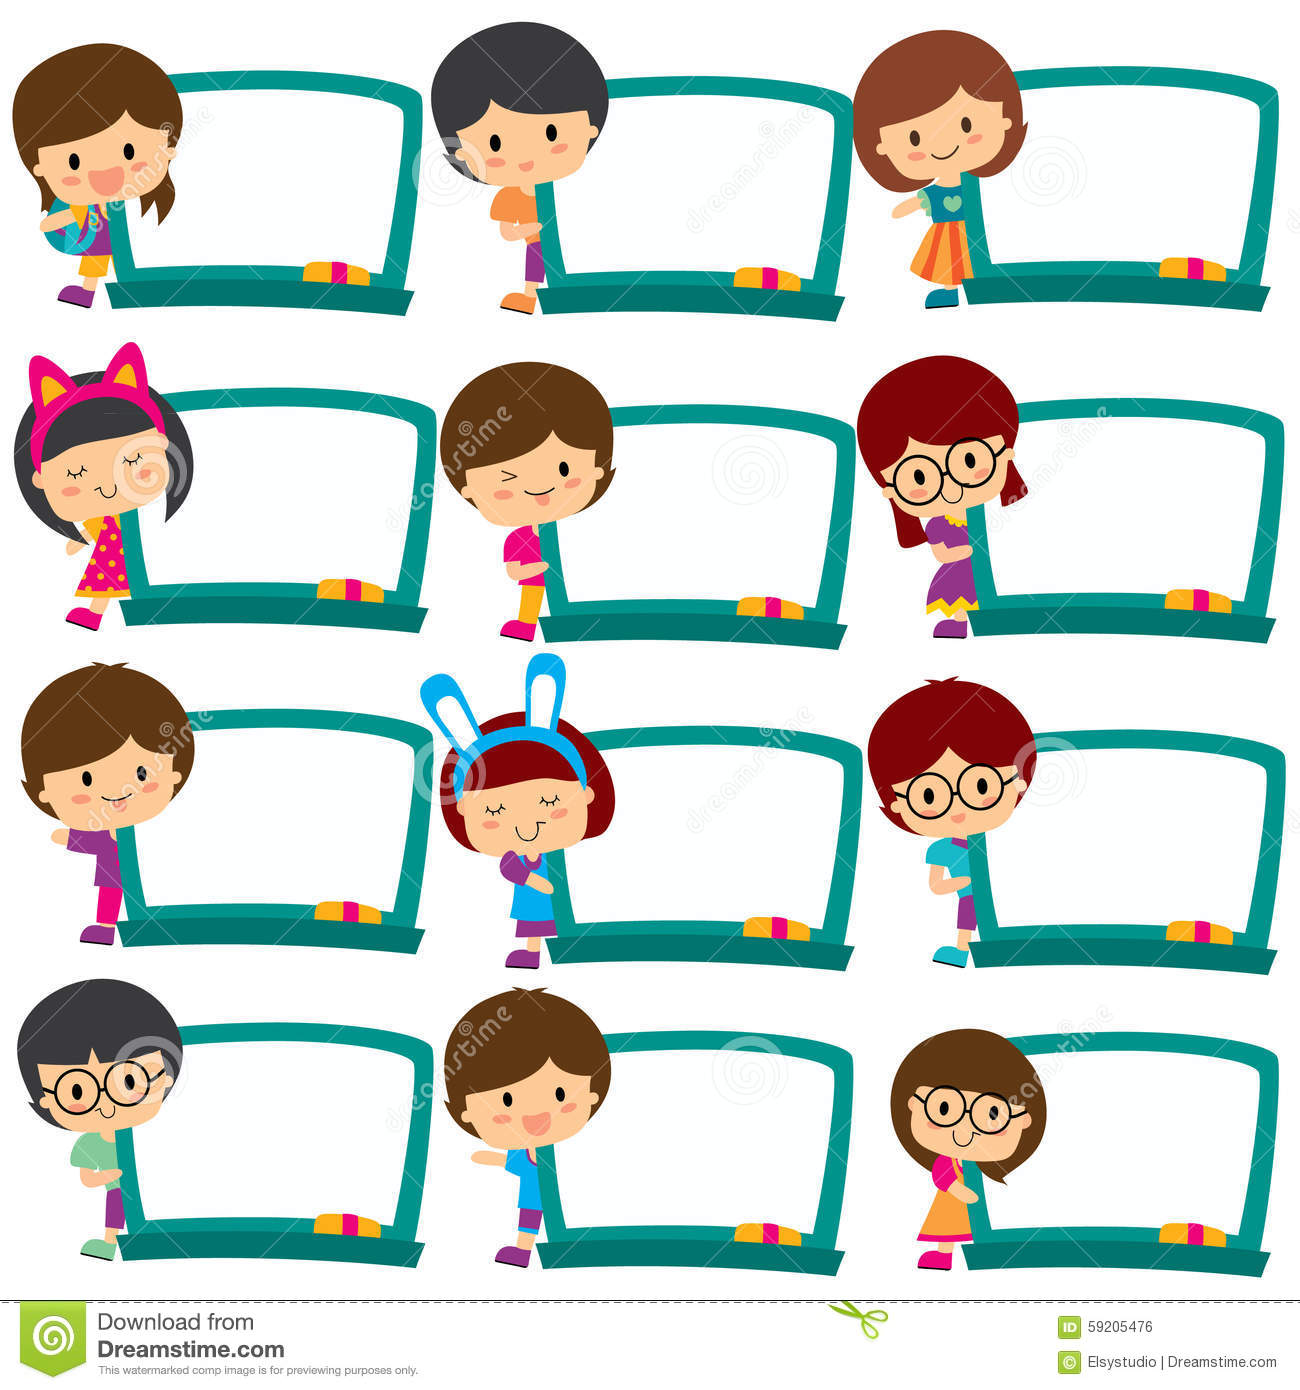 Kids frame board frames. Boxes clipart kid